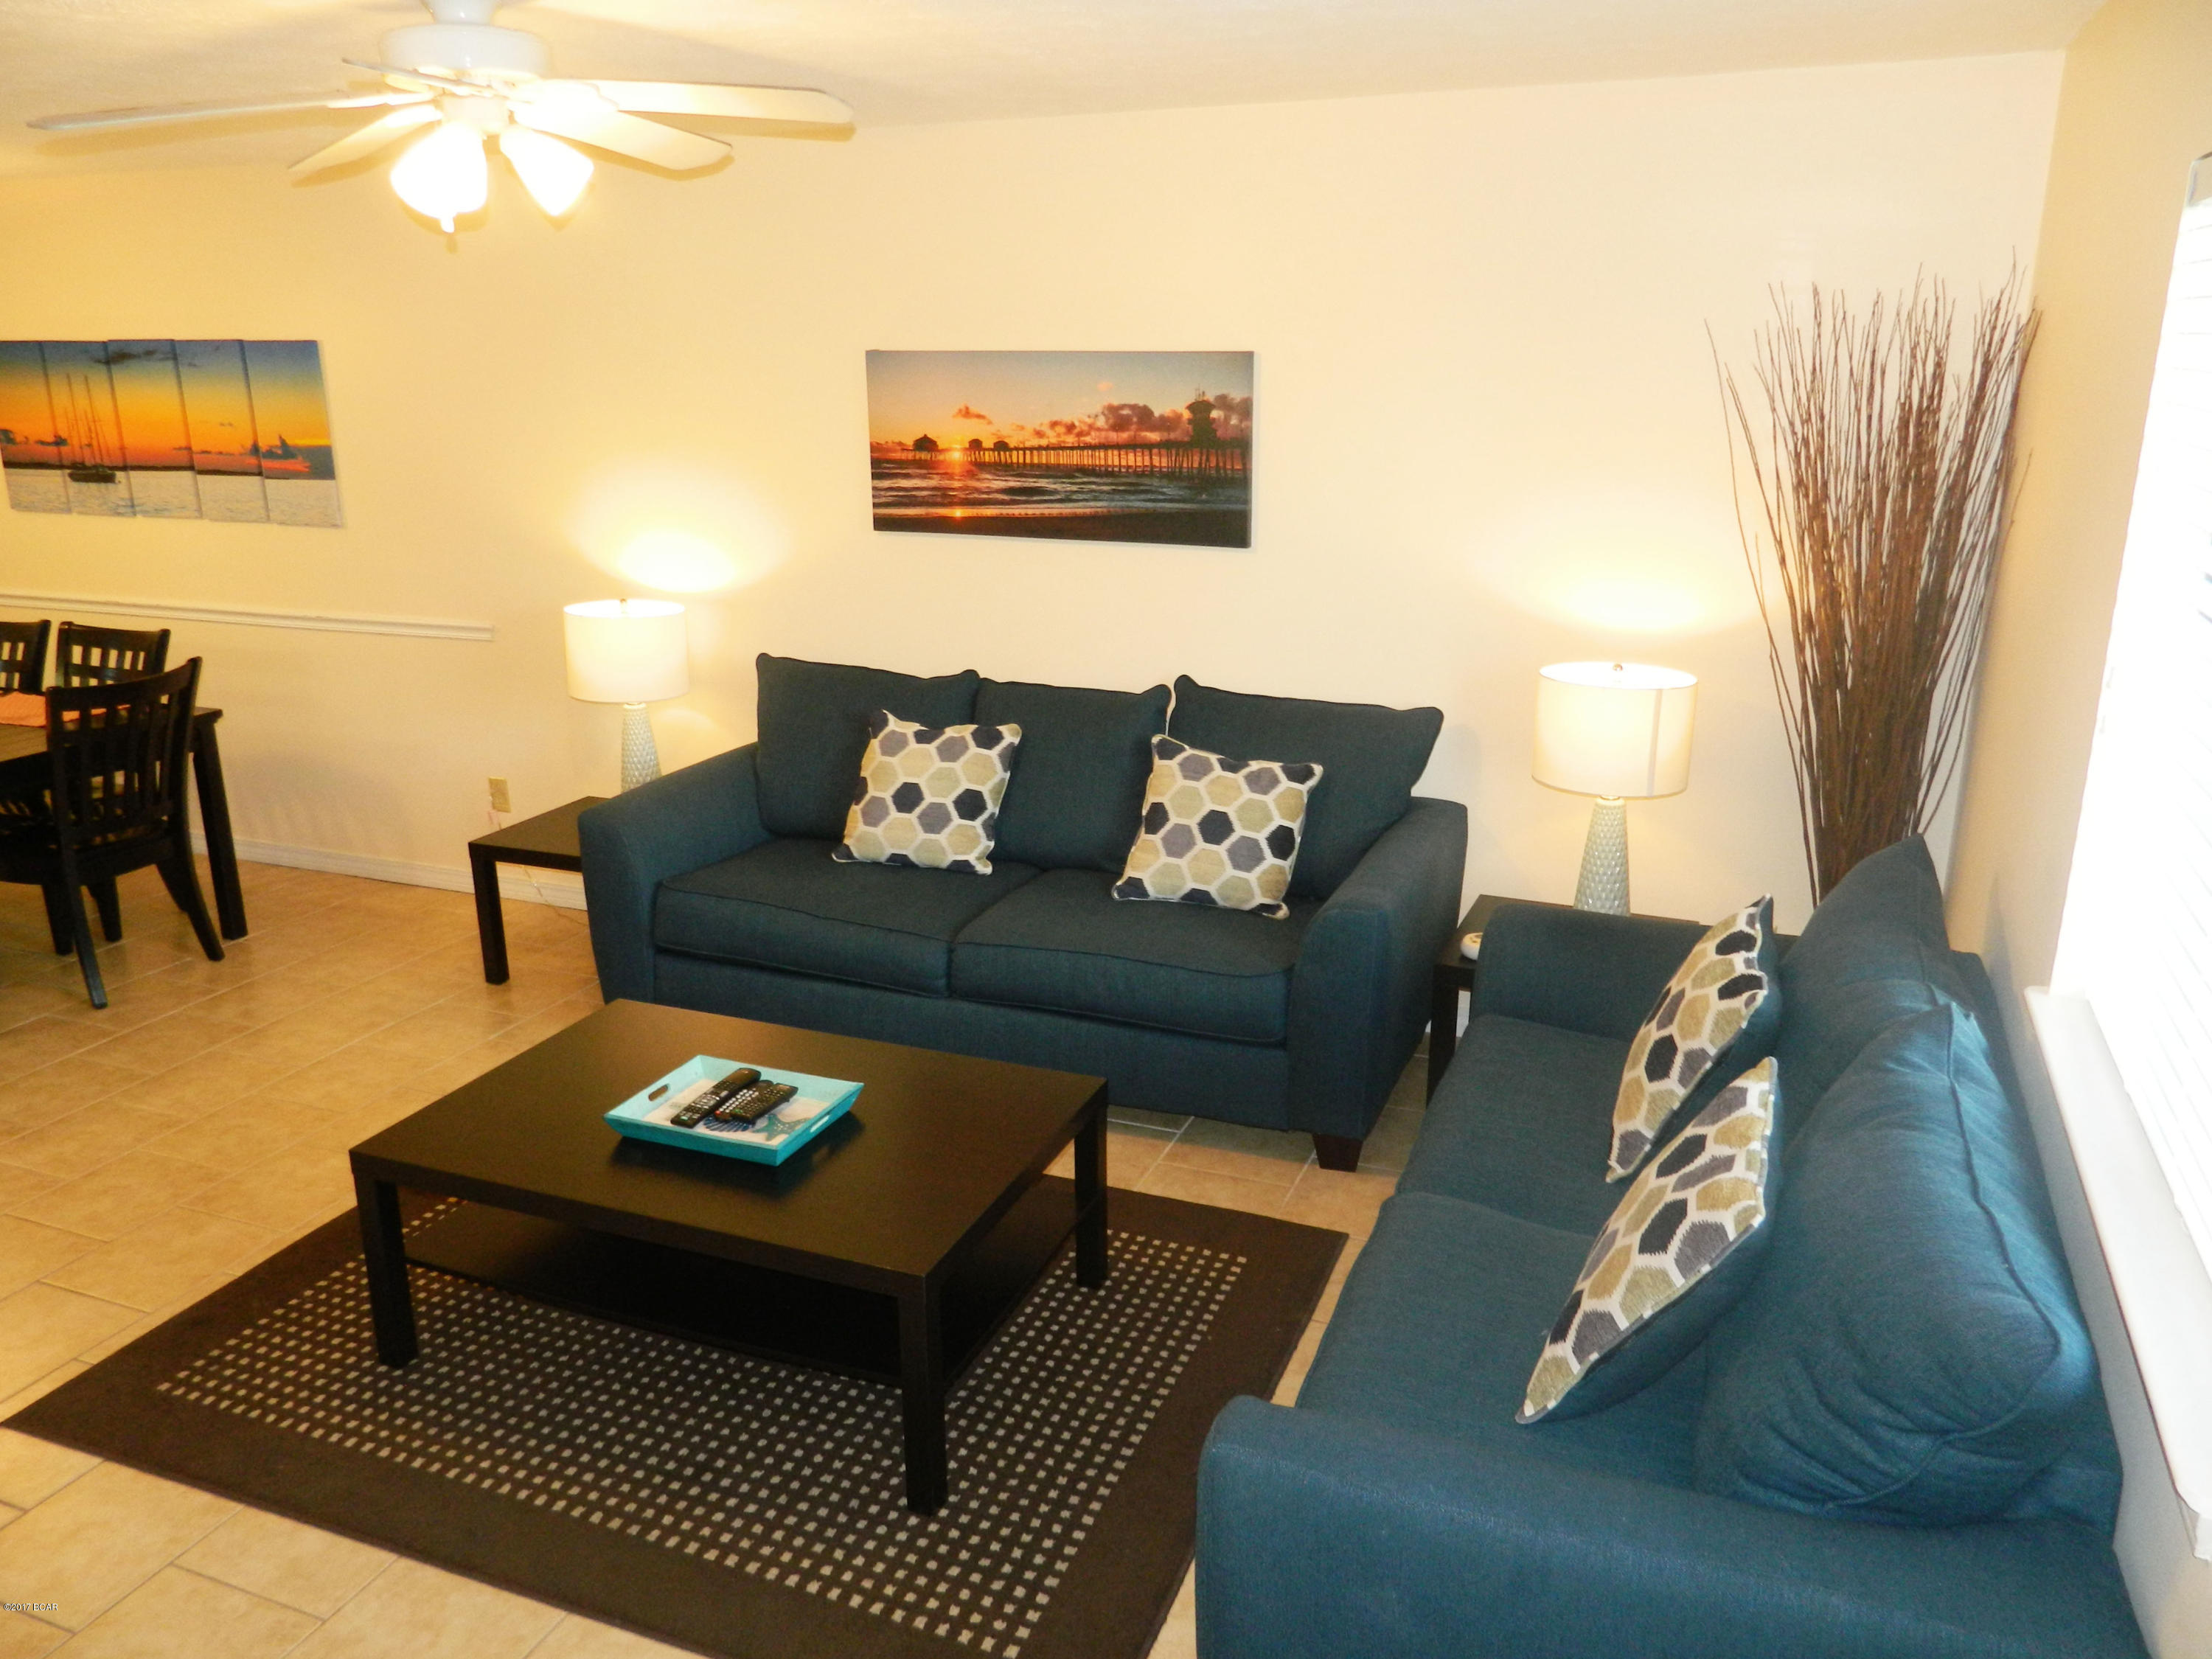 http://photos.listhub.net/RFGC21/KSEPTY/2?lm=20181004T201024